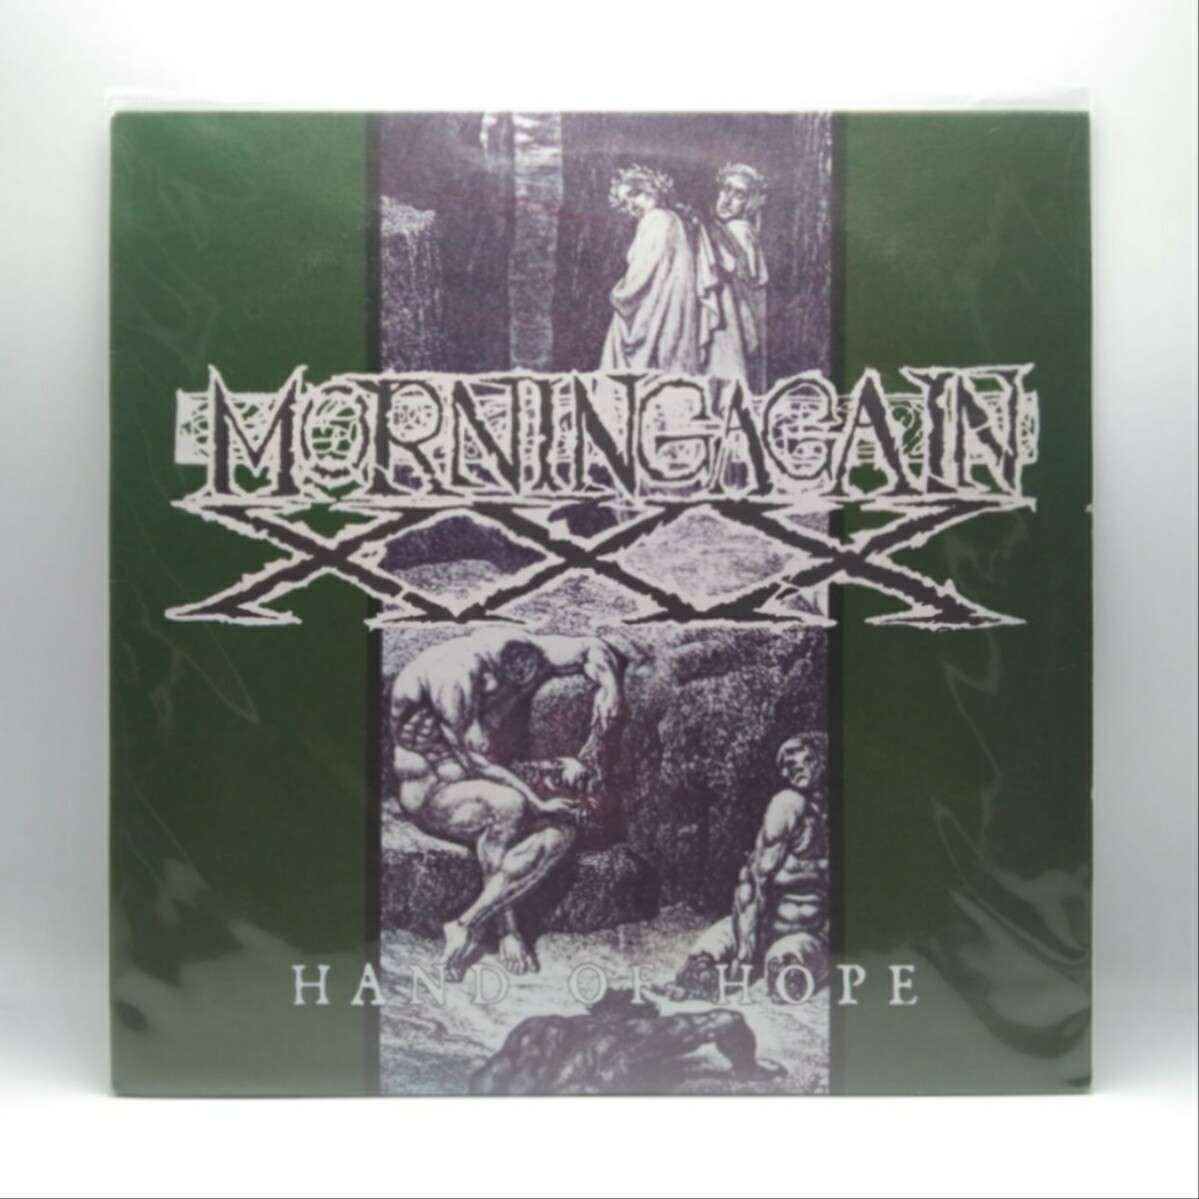 [USED] MORNING AGAIN -HAND OF HOPE- LP